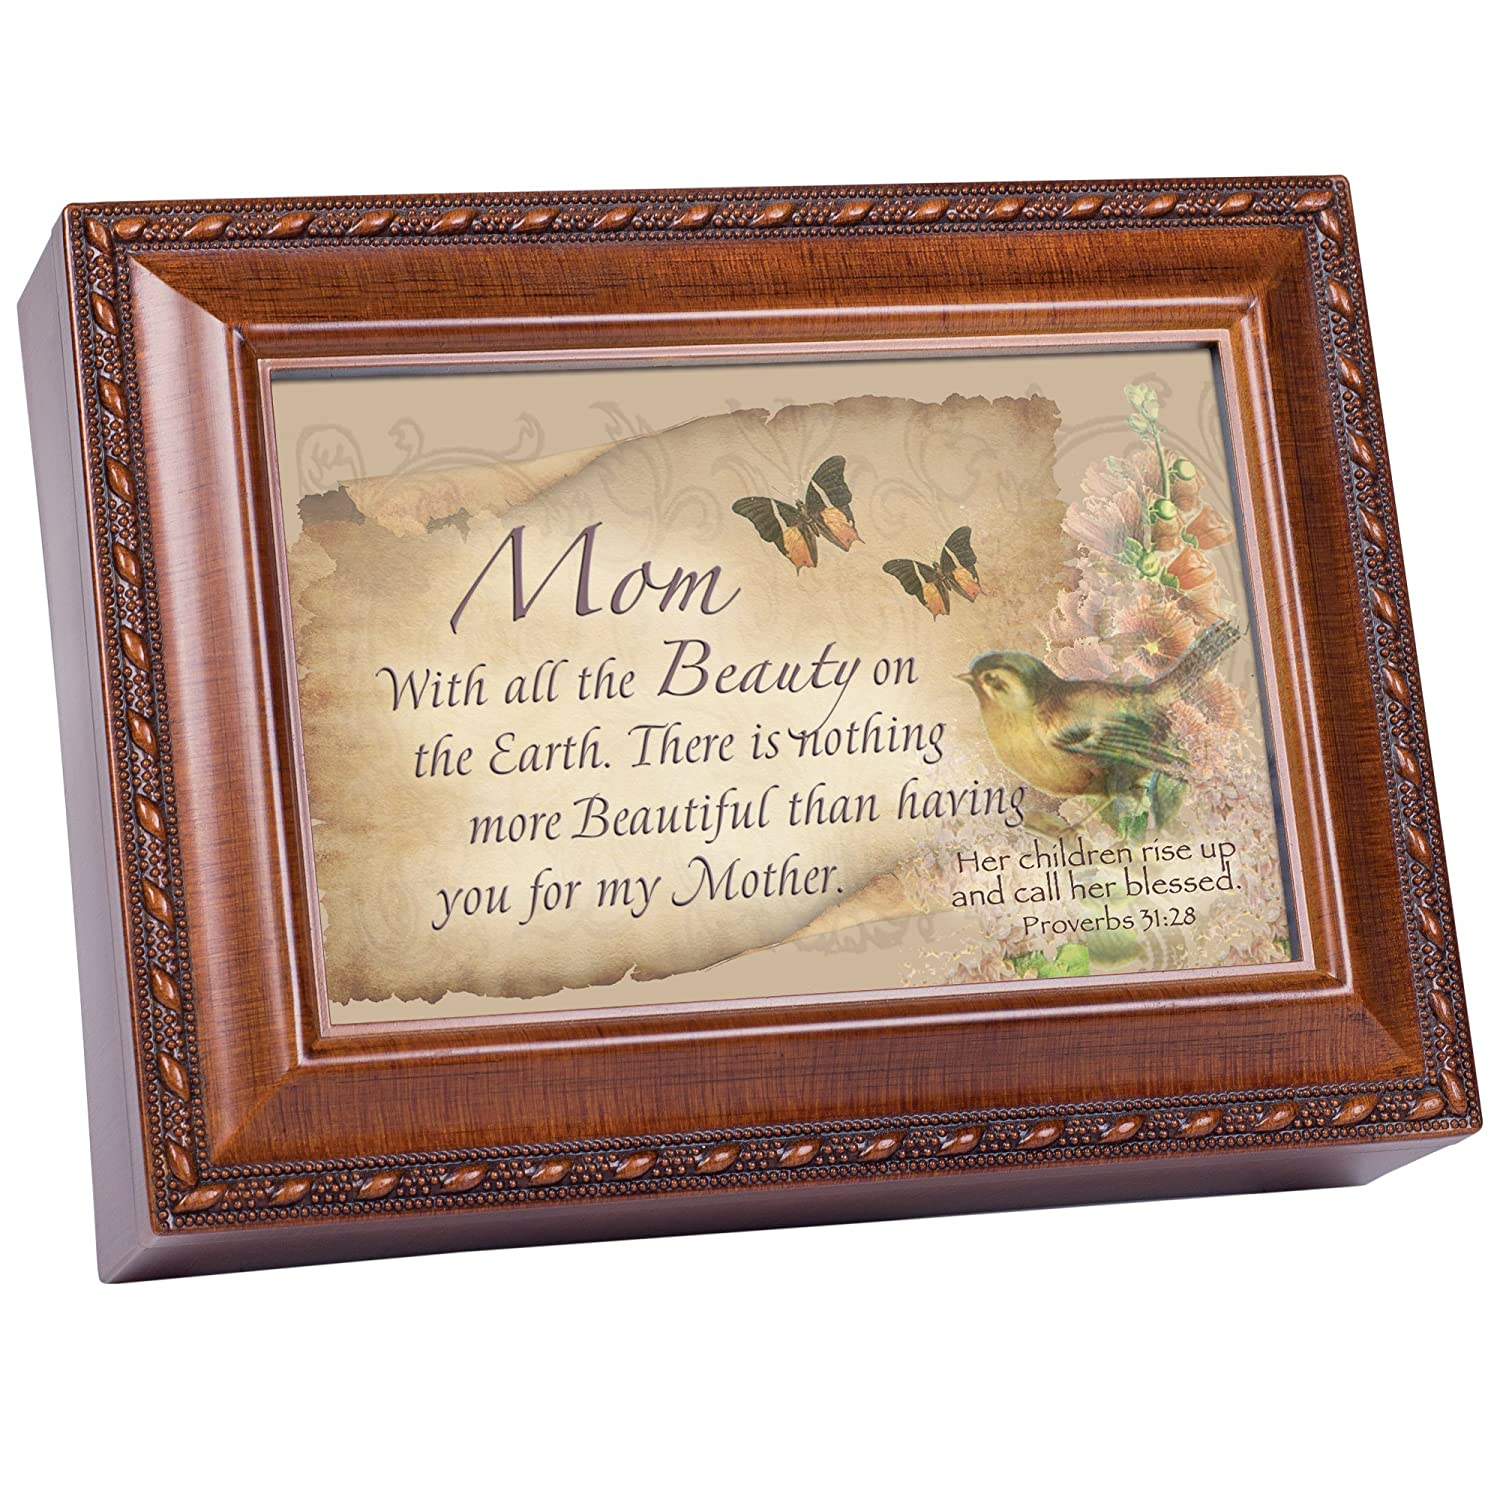 Cottage Garden Mom Beauty Woodgrain Inspirational Traditional Music Box Plays Amazing Grace